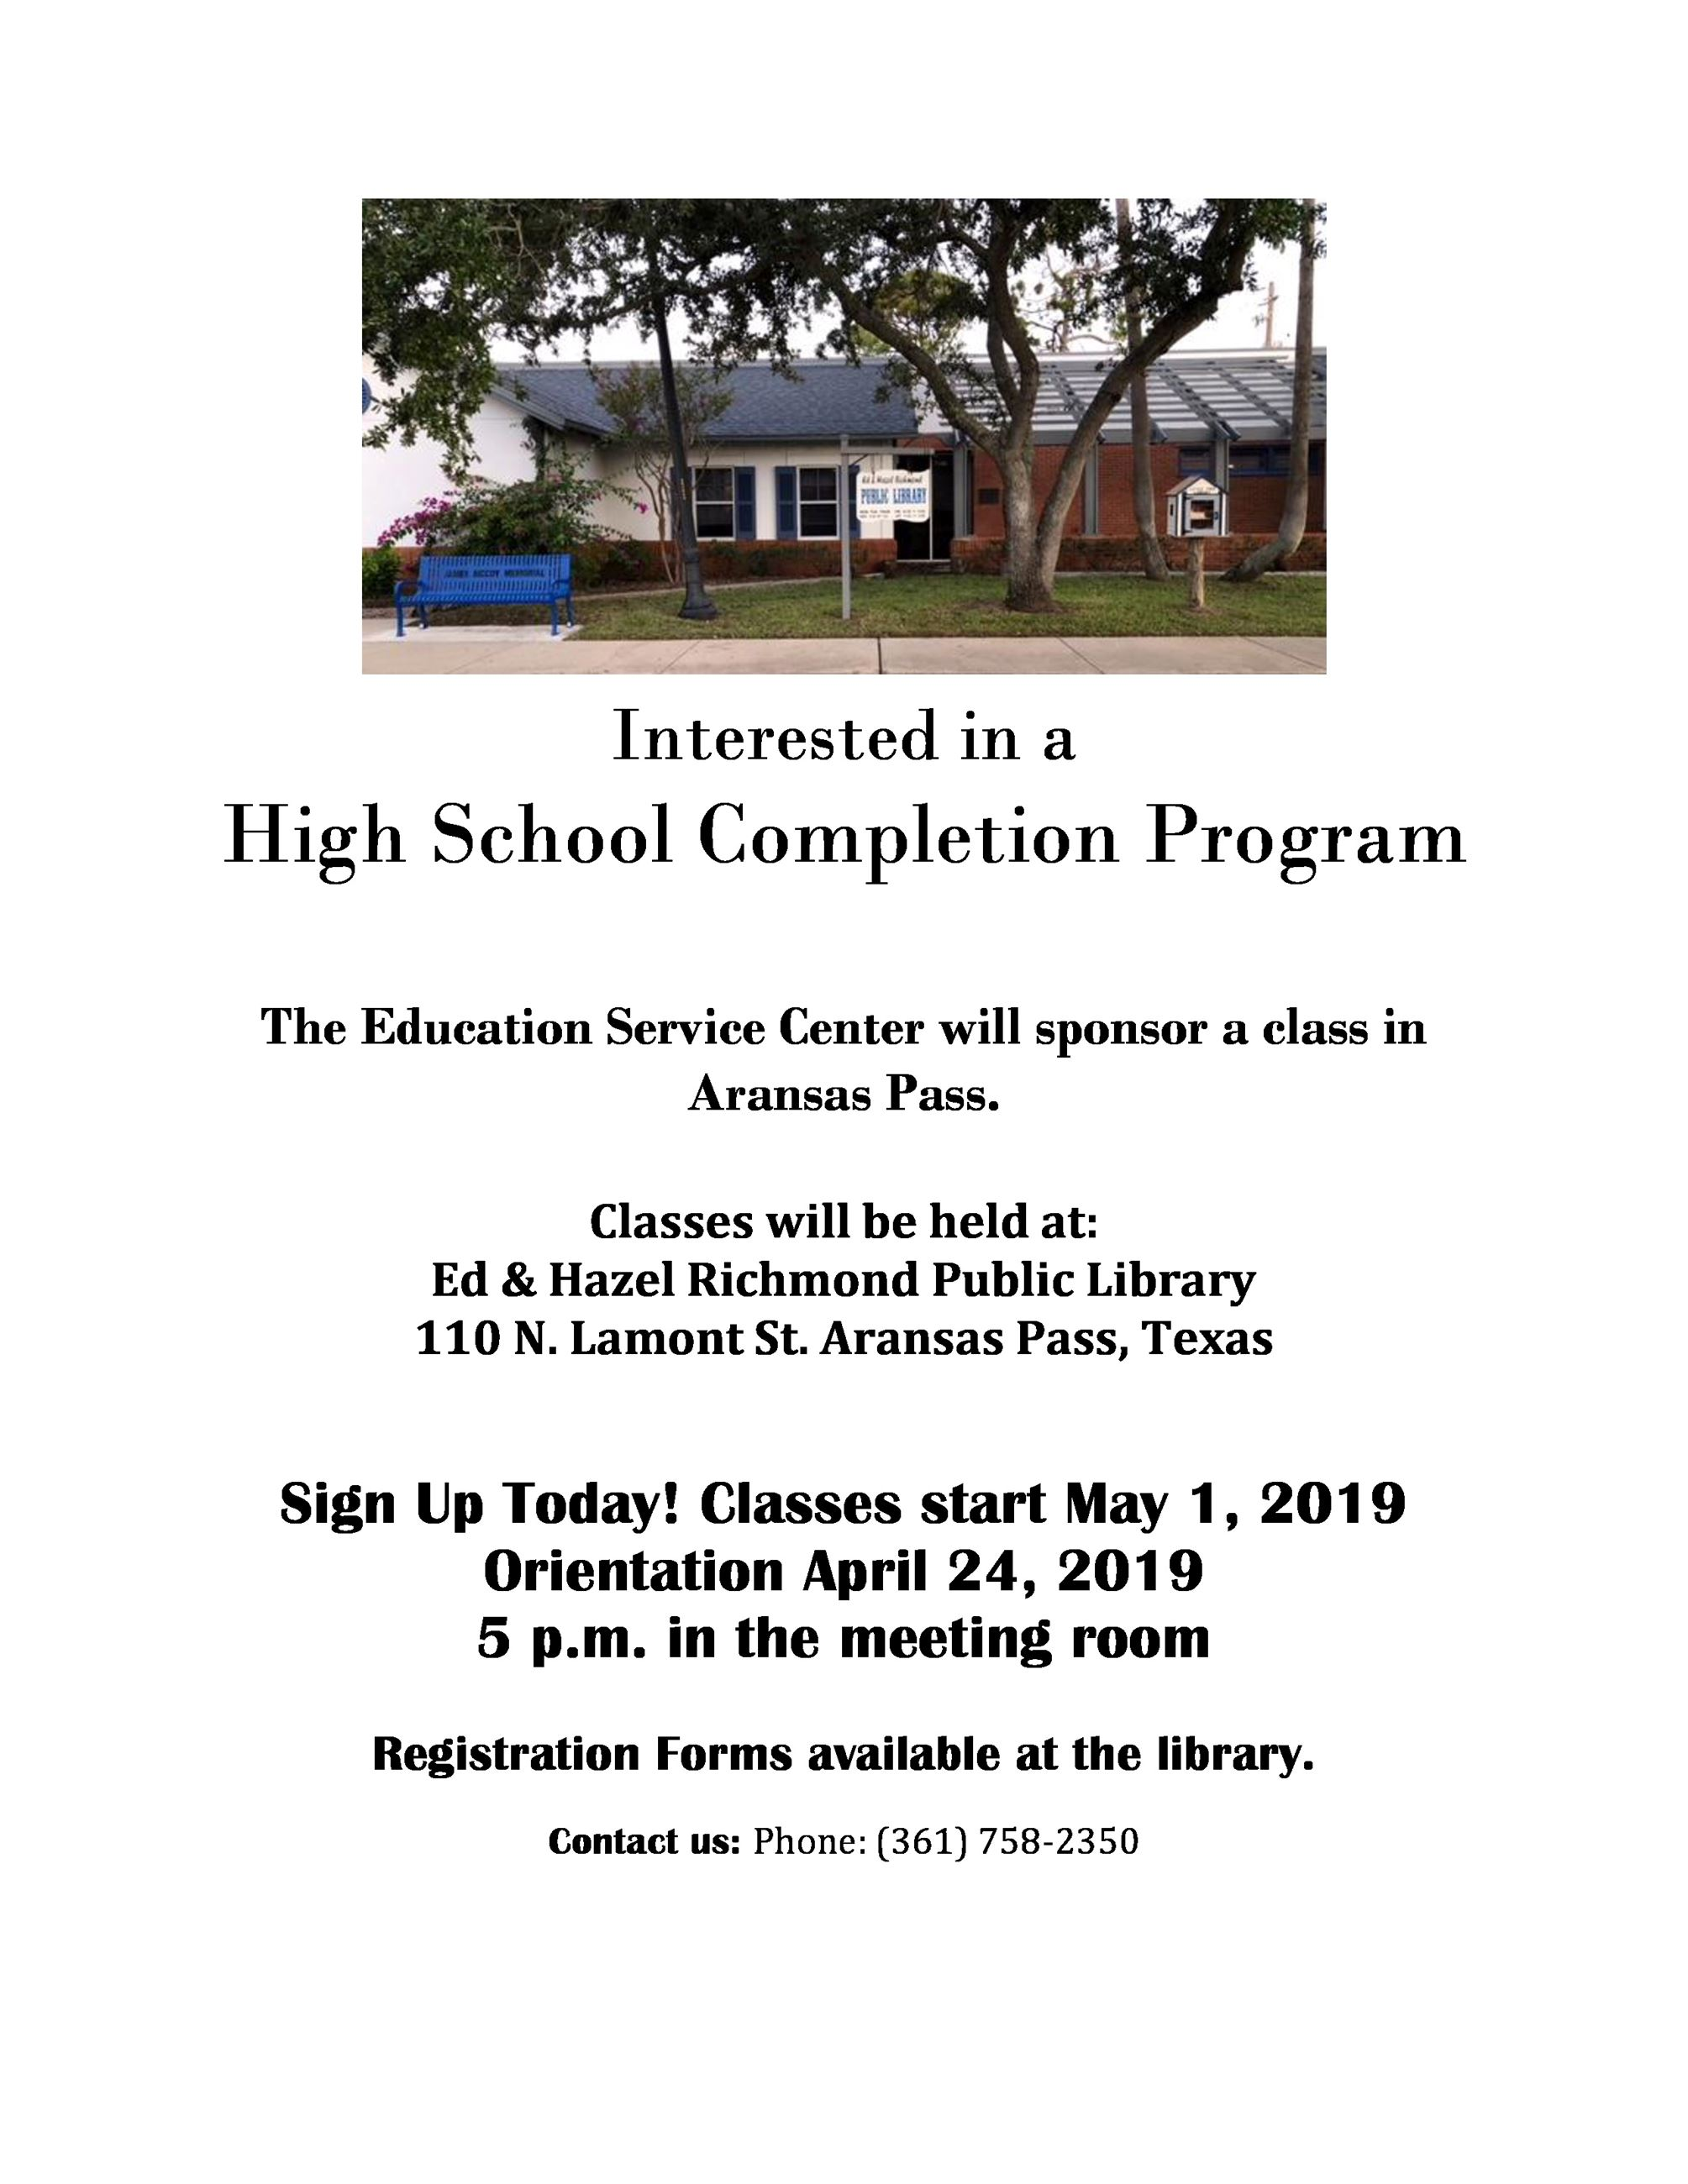 High School Completion Program